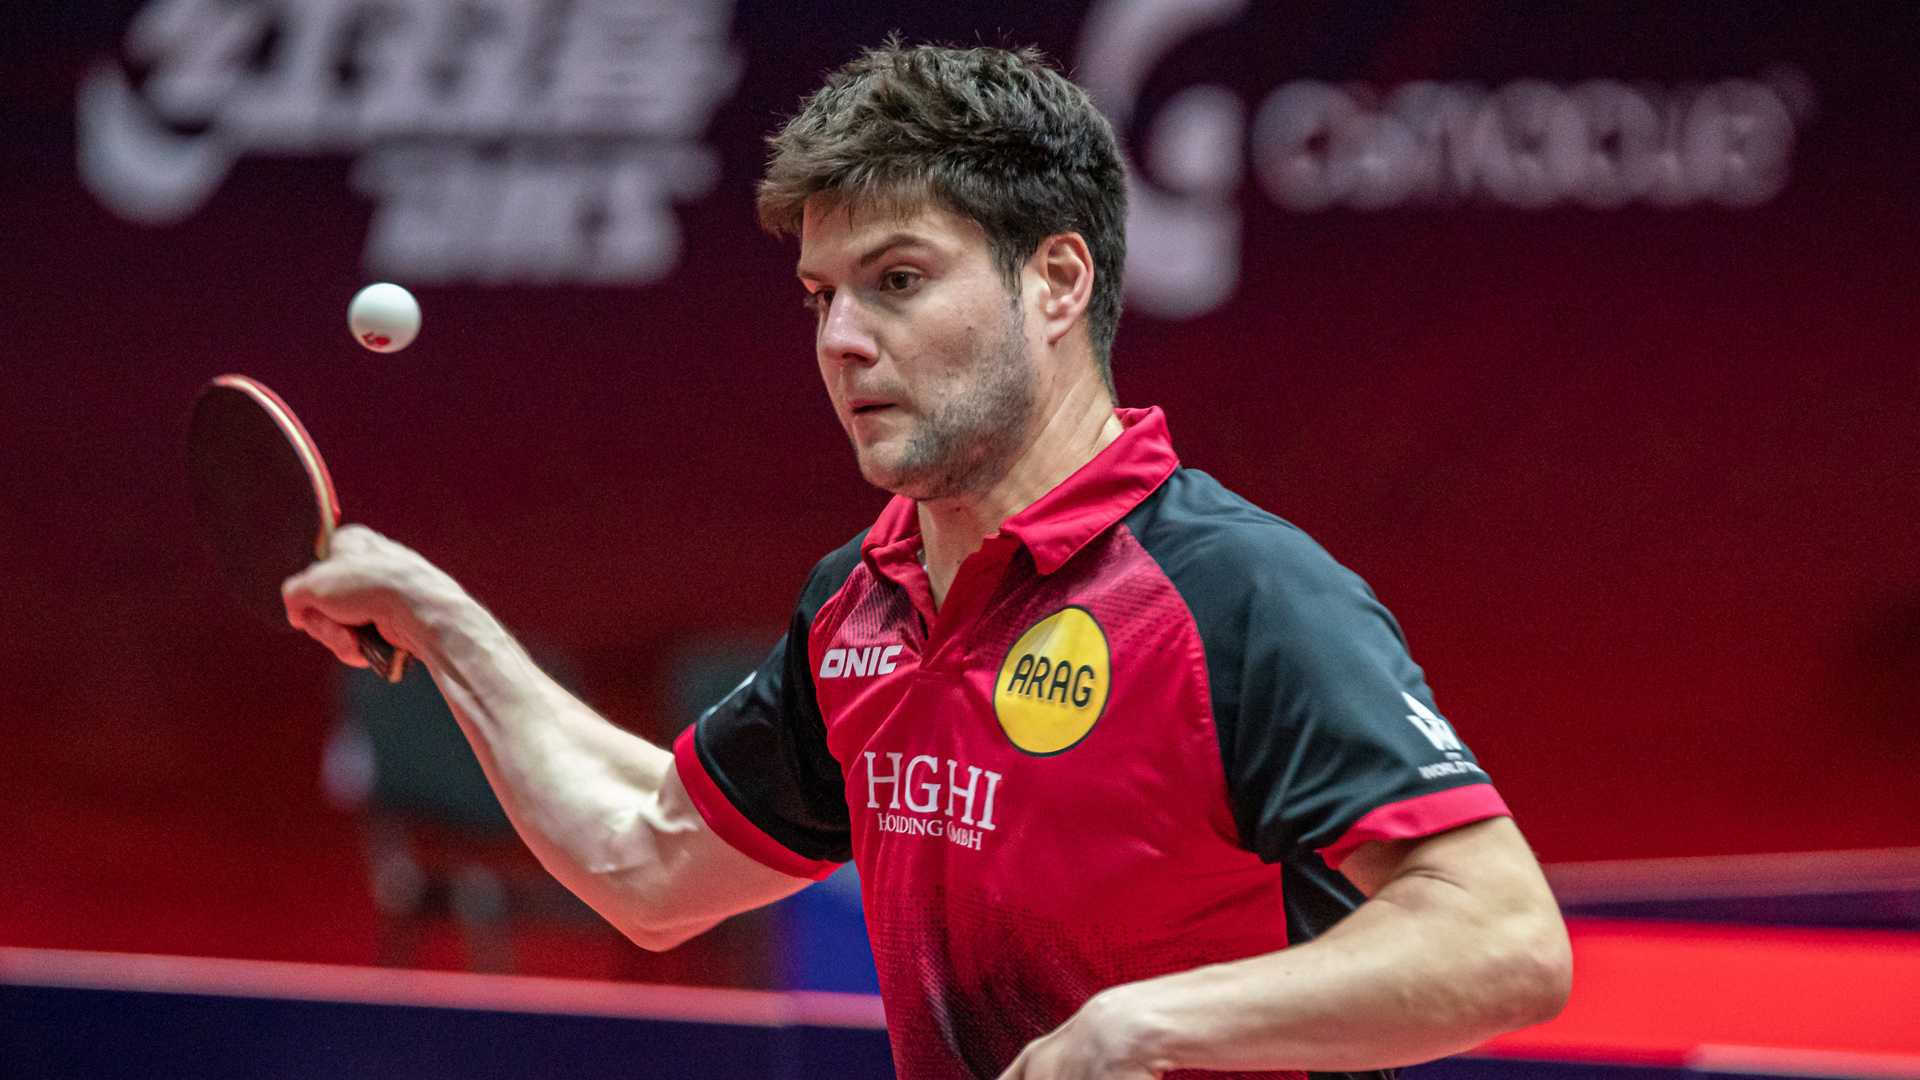 Top seeds Harimoto and Ovtcharov through to men's singles quarter-finals at ITTF Bulgaria Open